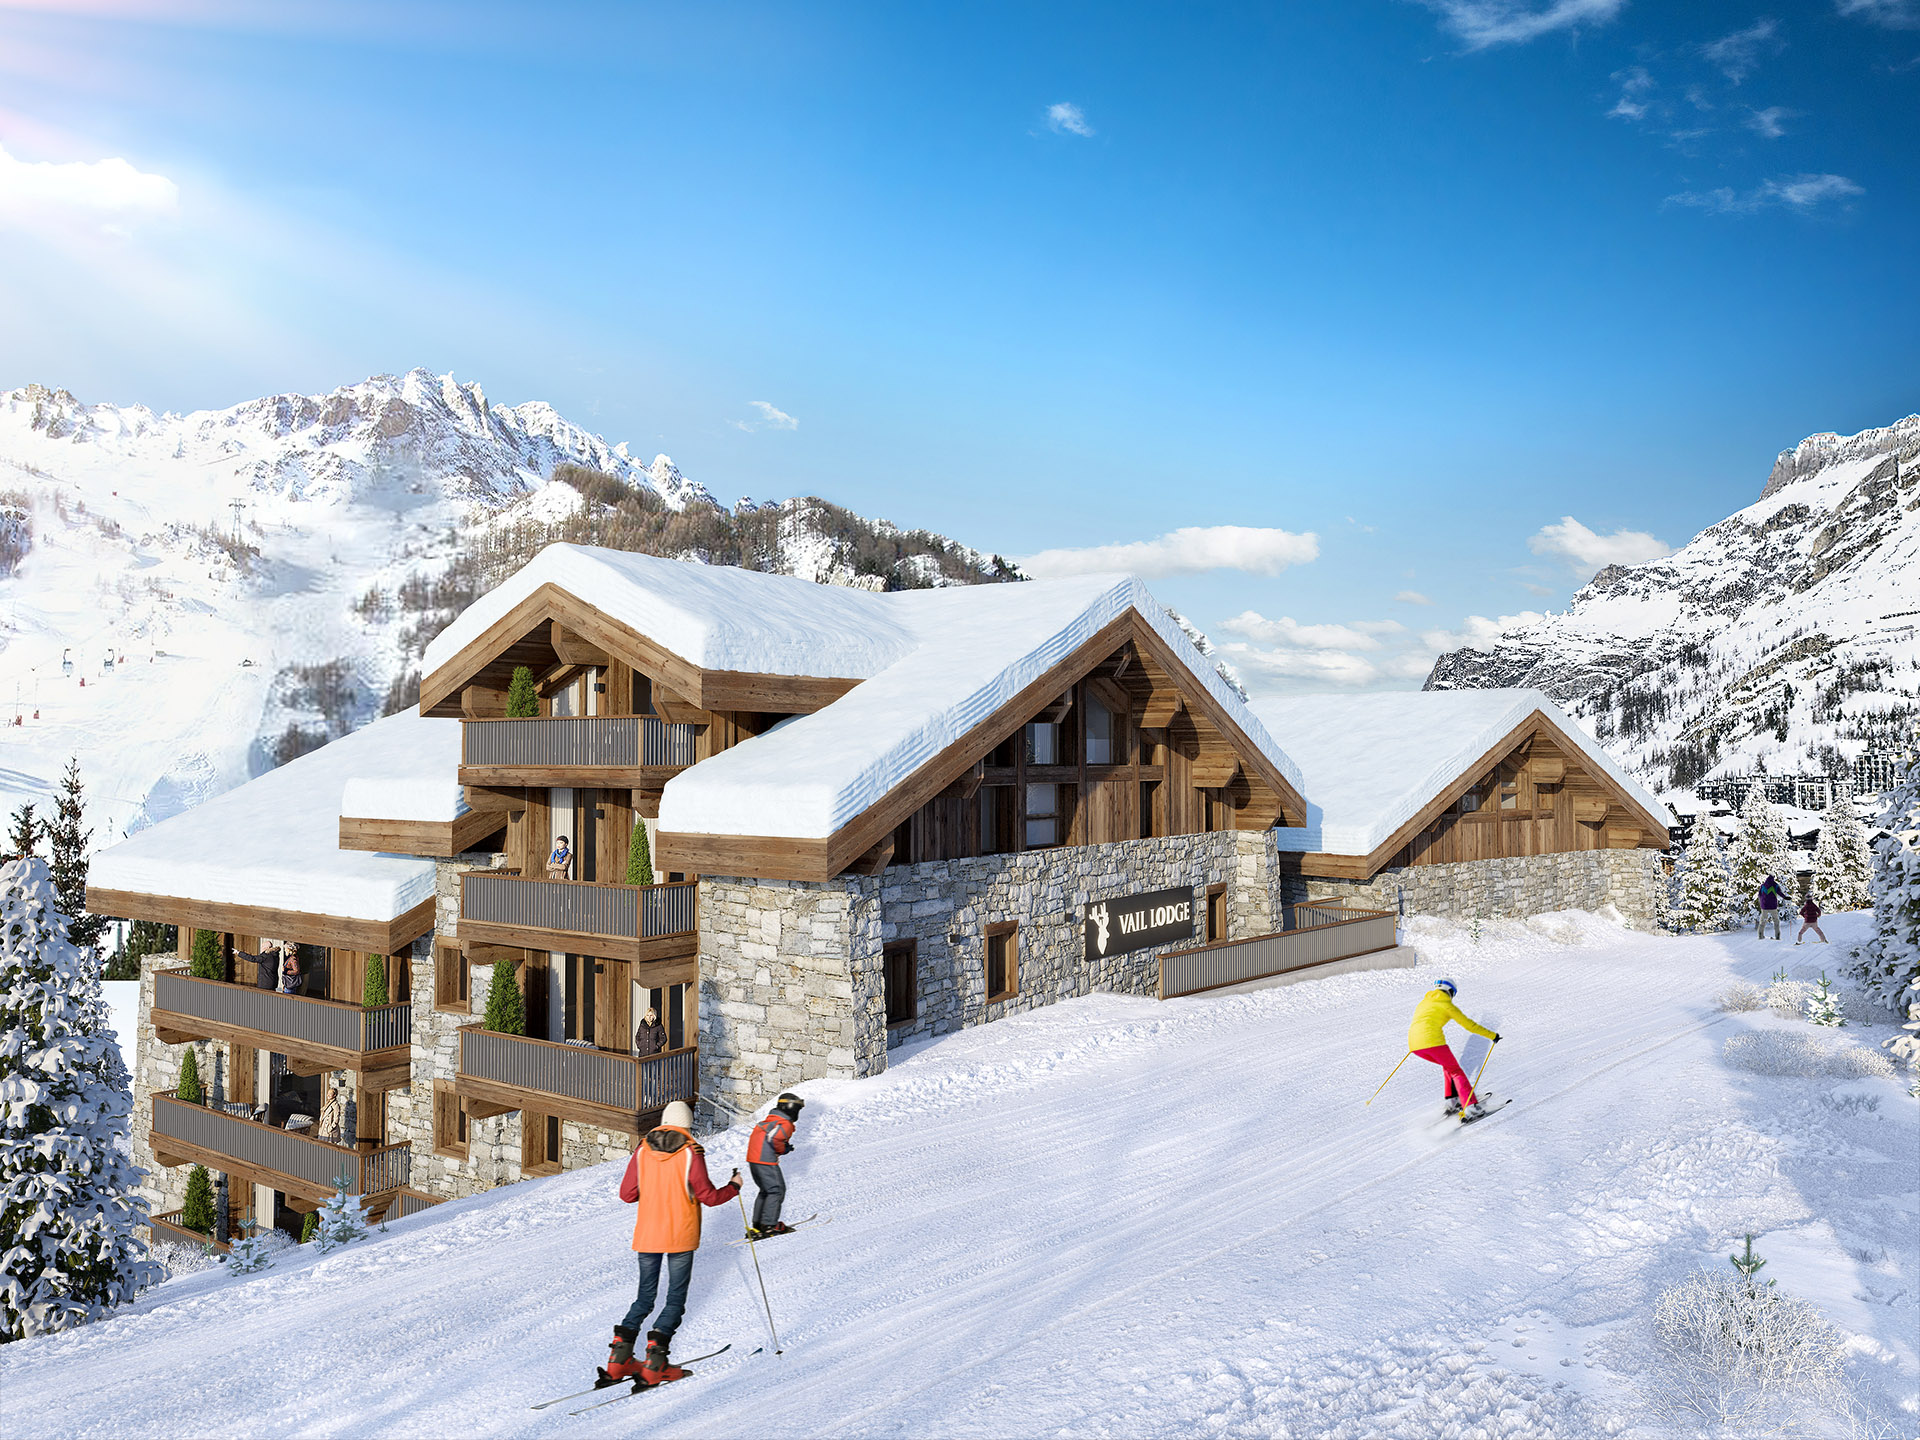 3D representation of a chalet integration in the mountain, next to the ski slopes